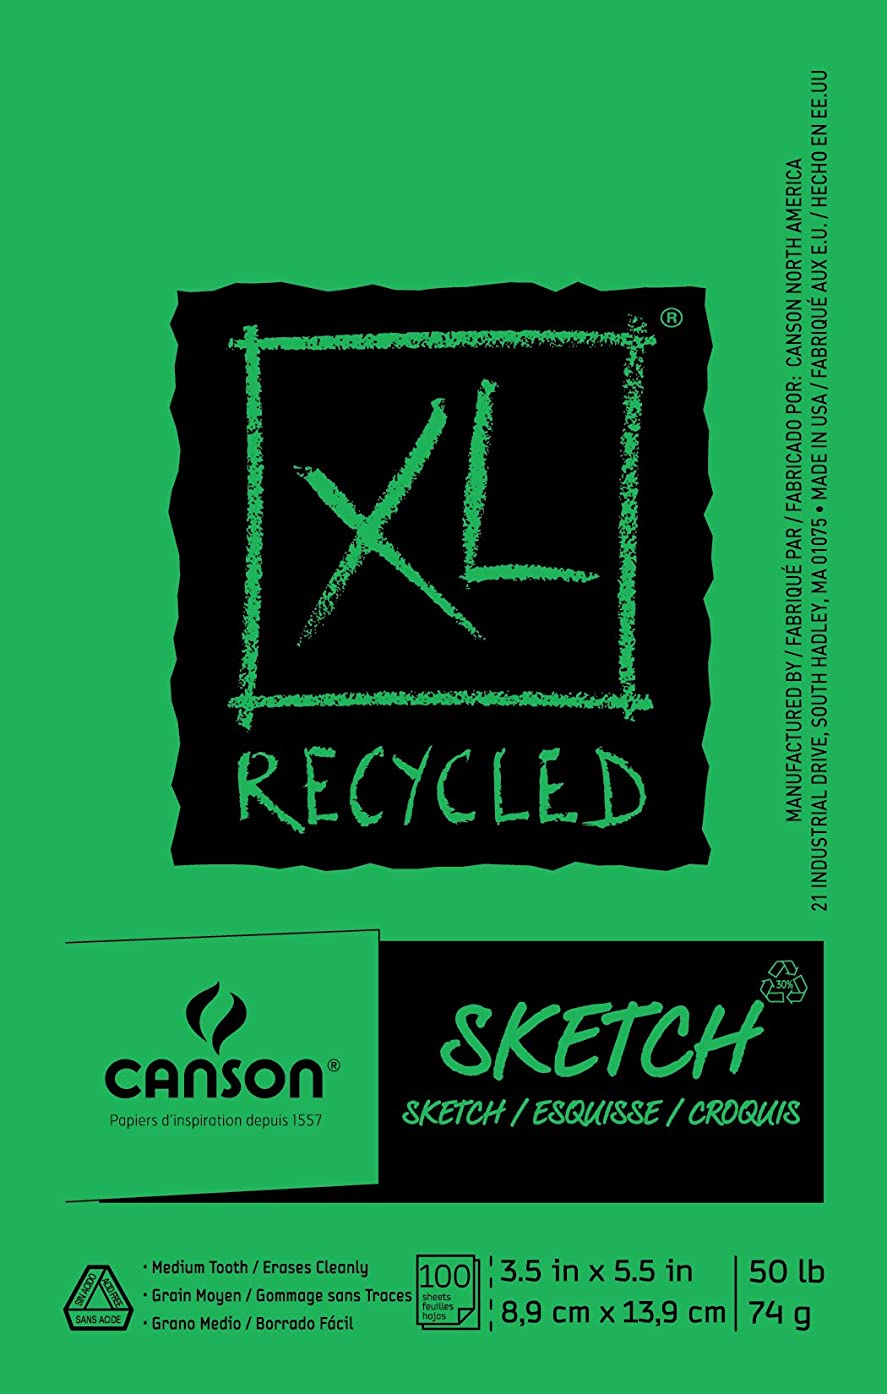 Canson XL Series Recycled Paper Sketch Pad, Fold Over, 50 Pound, 3.5 x 5.5 Inch, 100 Sheets